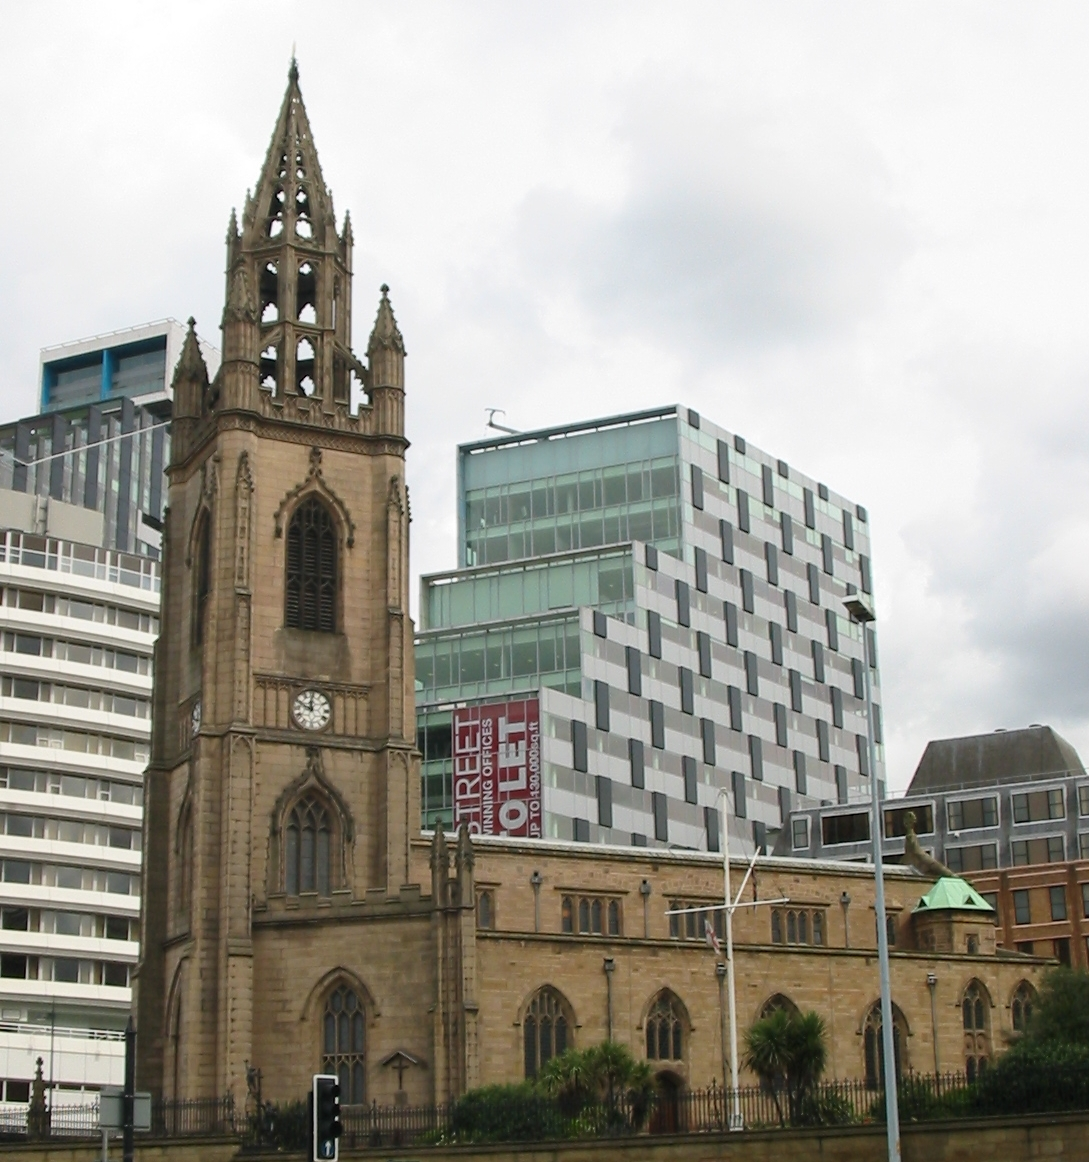 Grade II listed buildings in Liverpool-L2 - Wikipedia